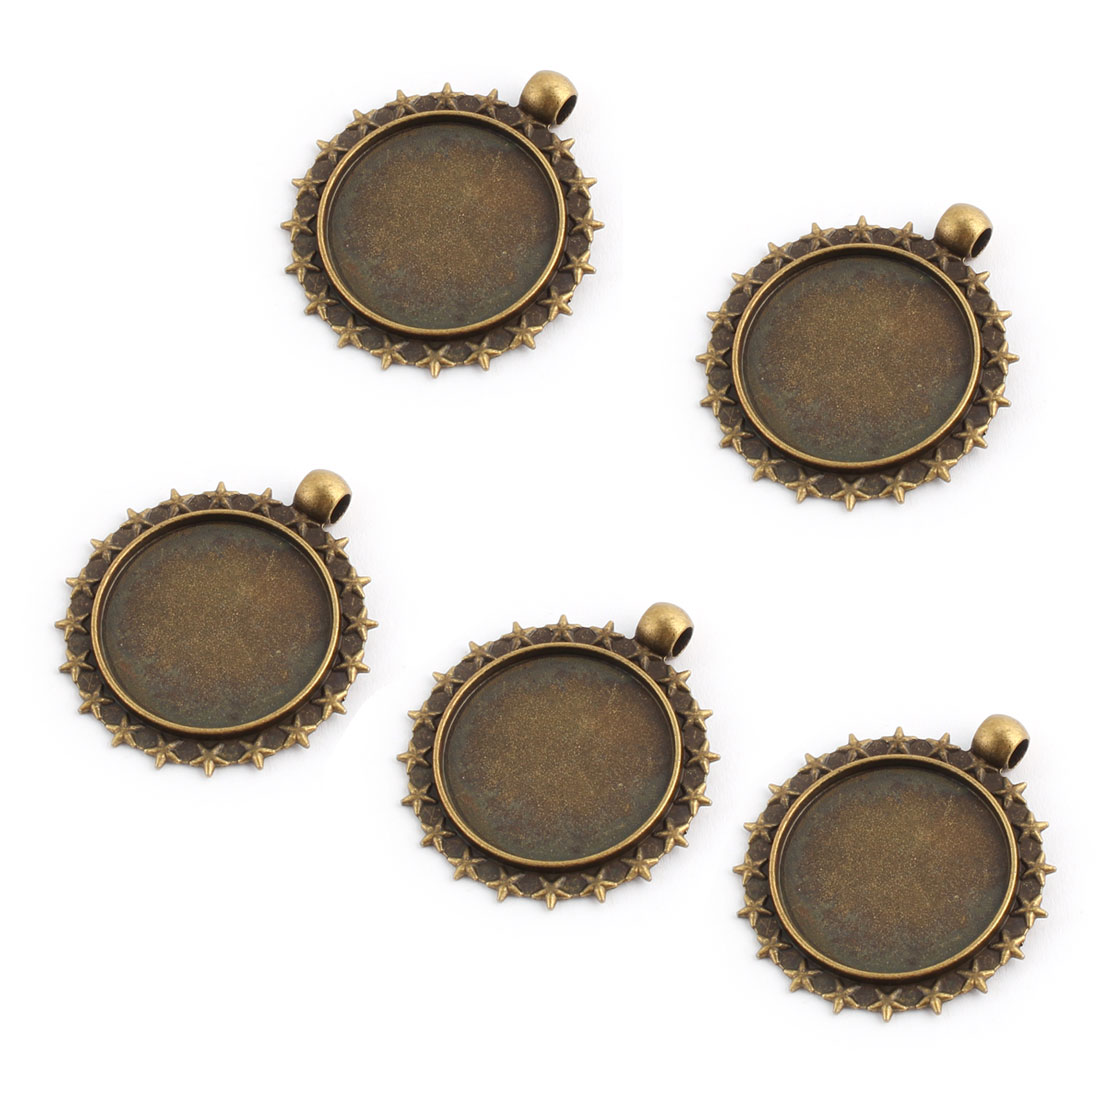 Jewelry Copper Alloy Star Rim Vintage Style Pendant Trays Bronze Tone 25mm Inner Dia 5pcs